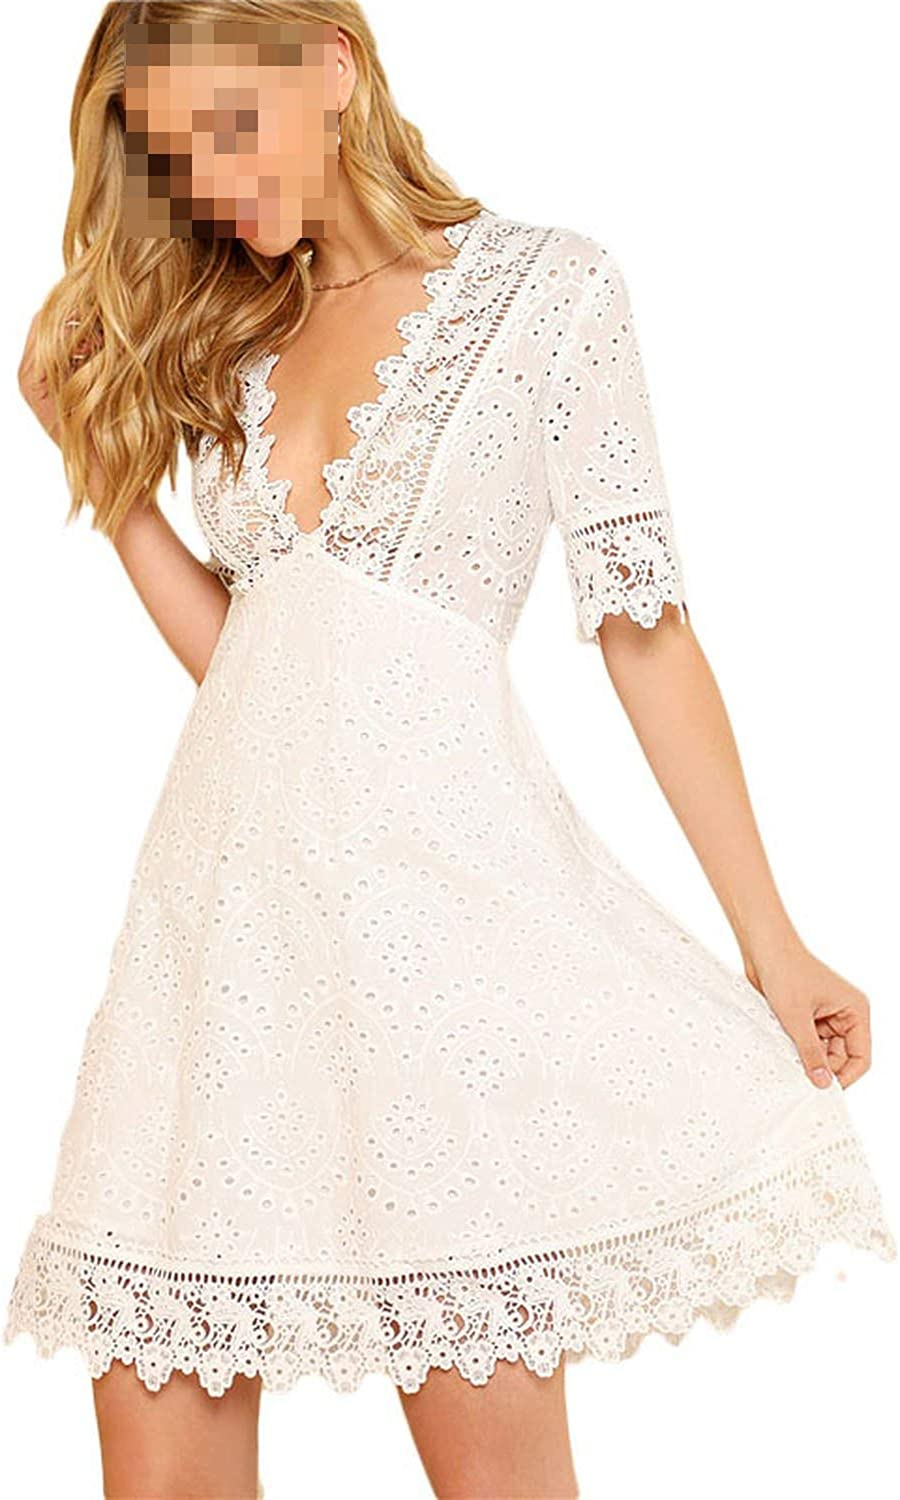 Betterluse Lace Trim Eyelet Embroidered Dress Women White Deep V Neck Half Sleeve Cut Out Plain Dress 2019 Summer Sexy Cotton Dress,White,S